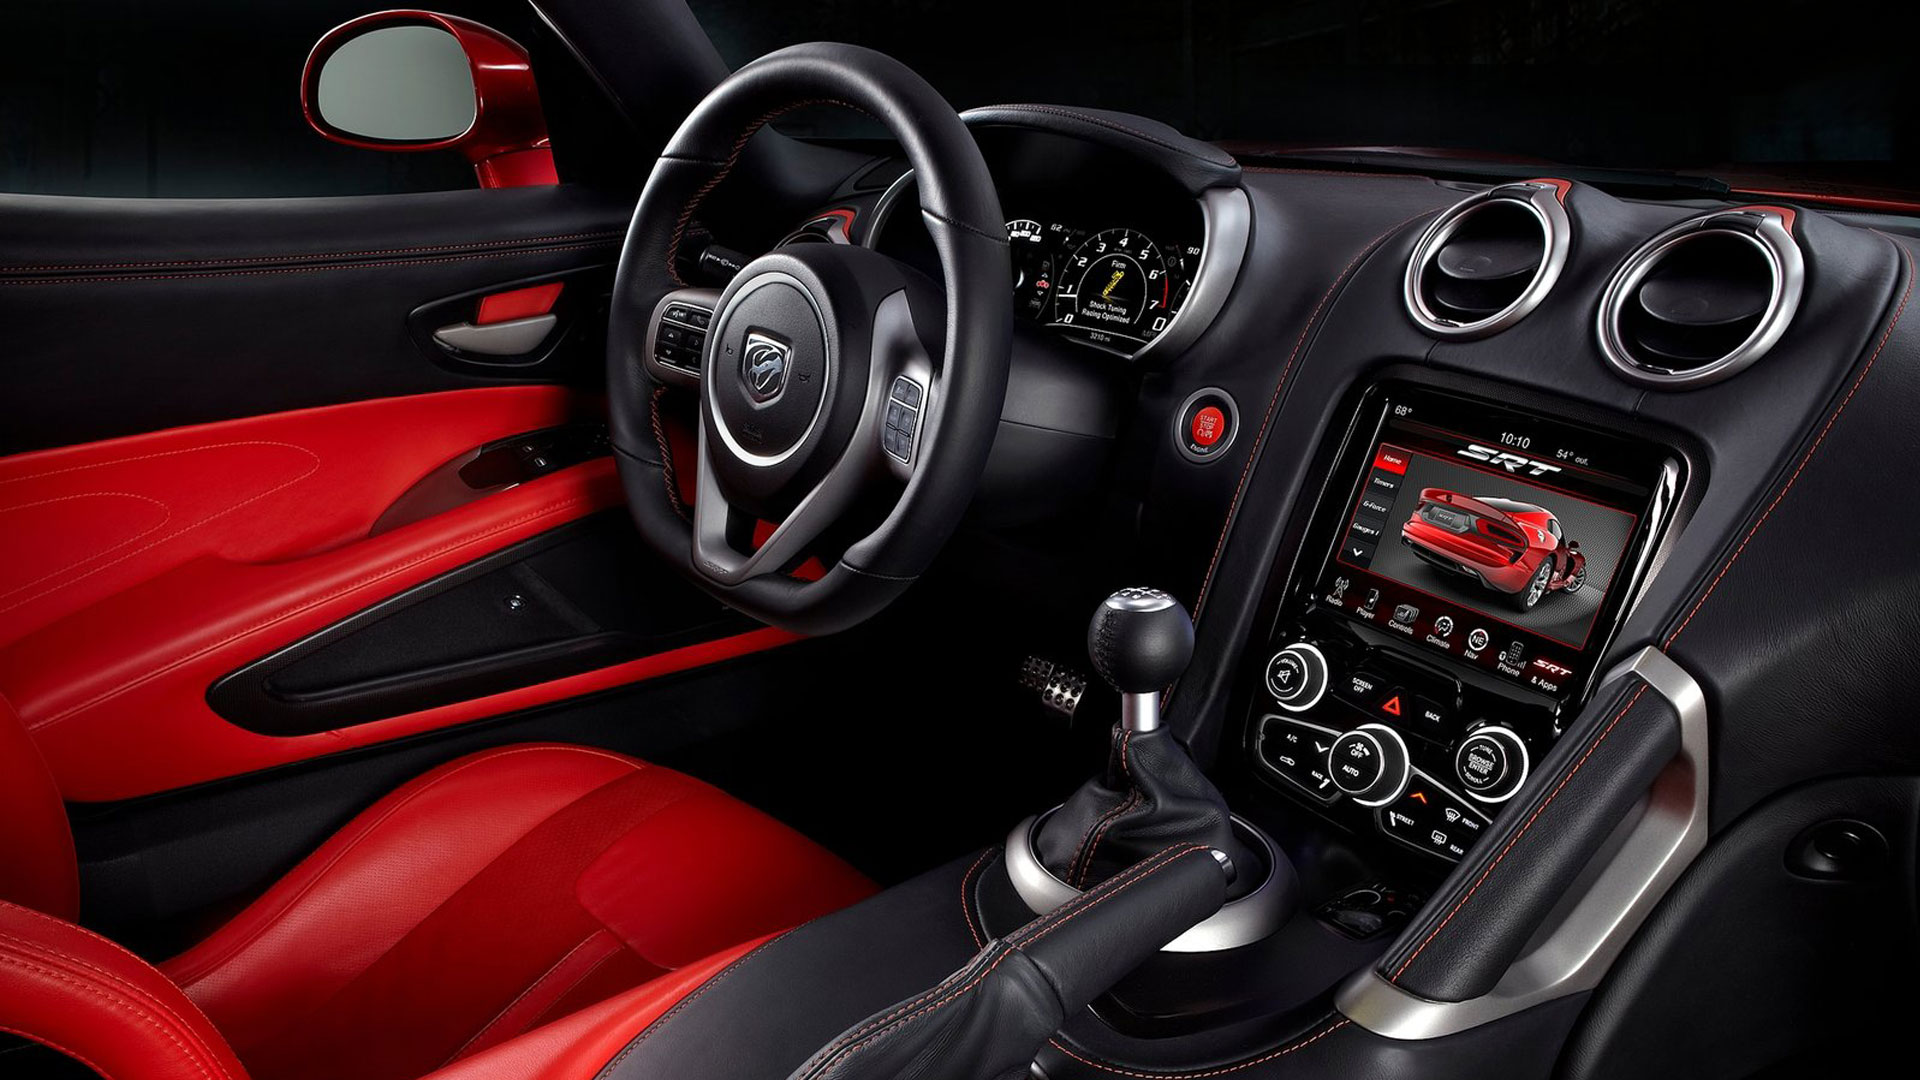 2013 Dodge SRT Viper GTS Dash Board 2013 Dodge SRT Viper GTS Price and Review